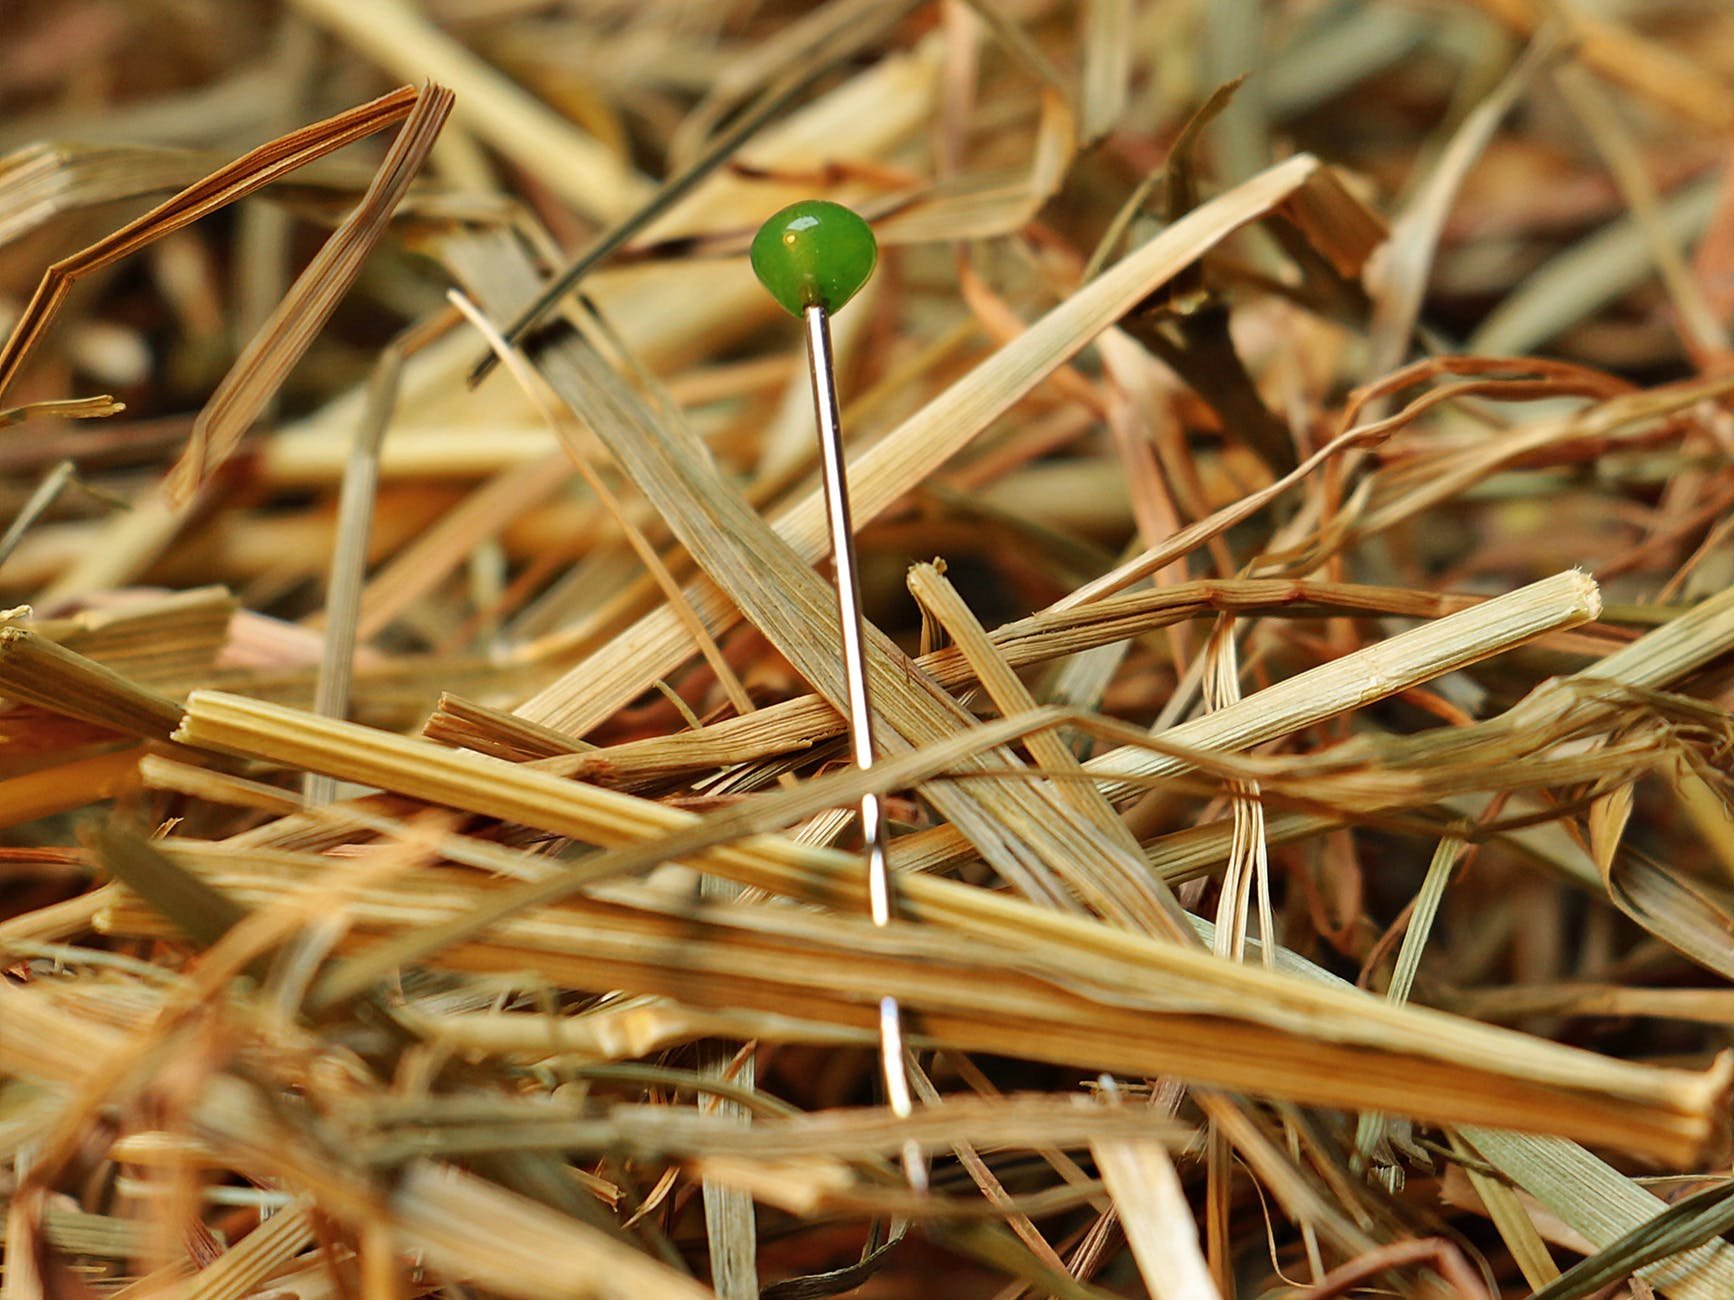 green pin on brown hay